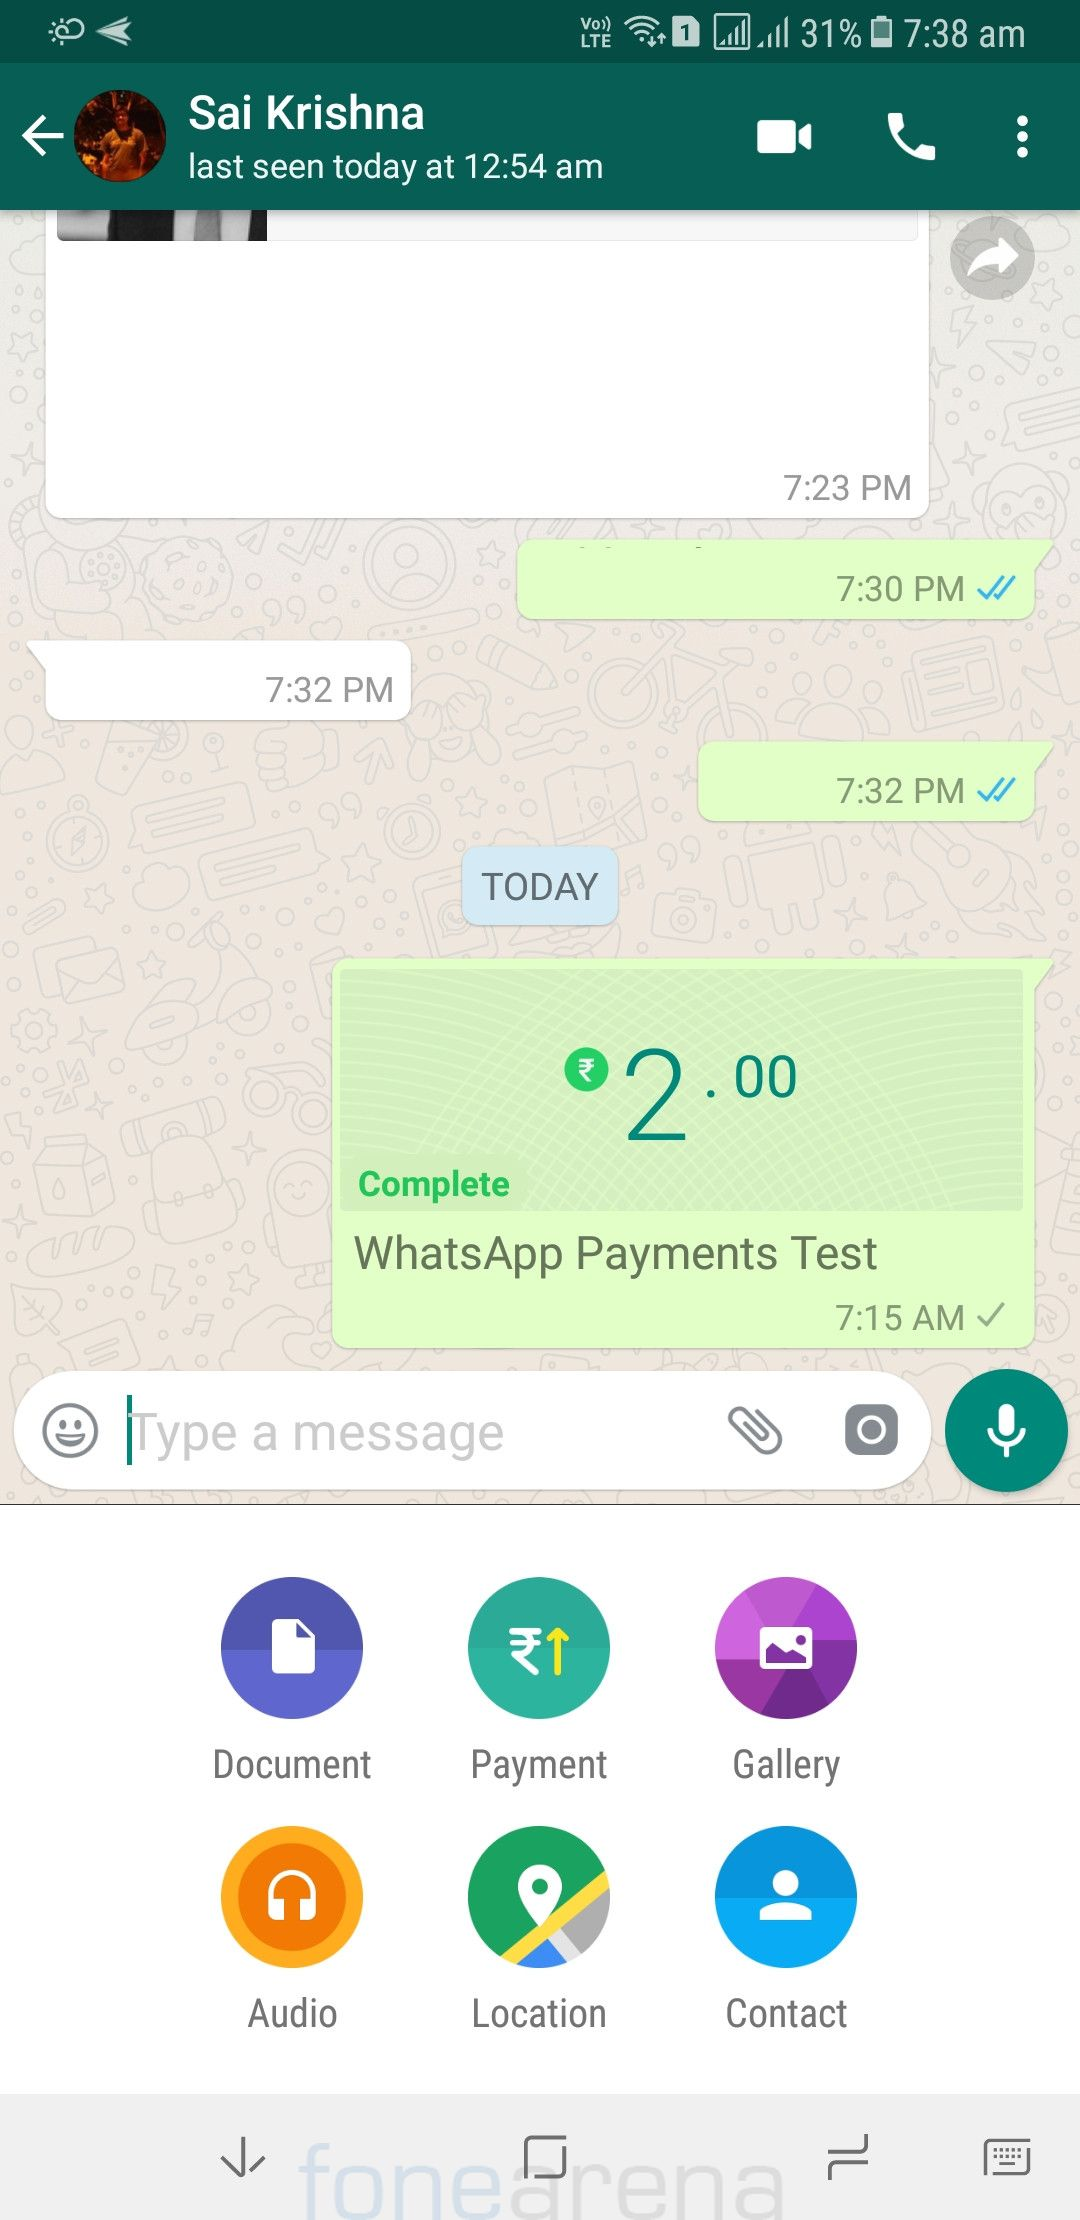 receive whatsapp images